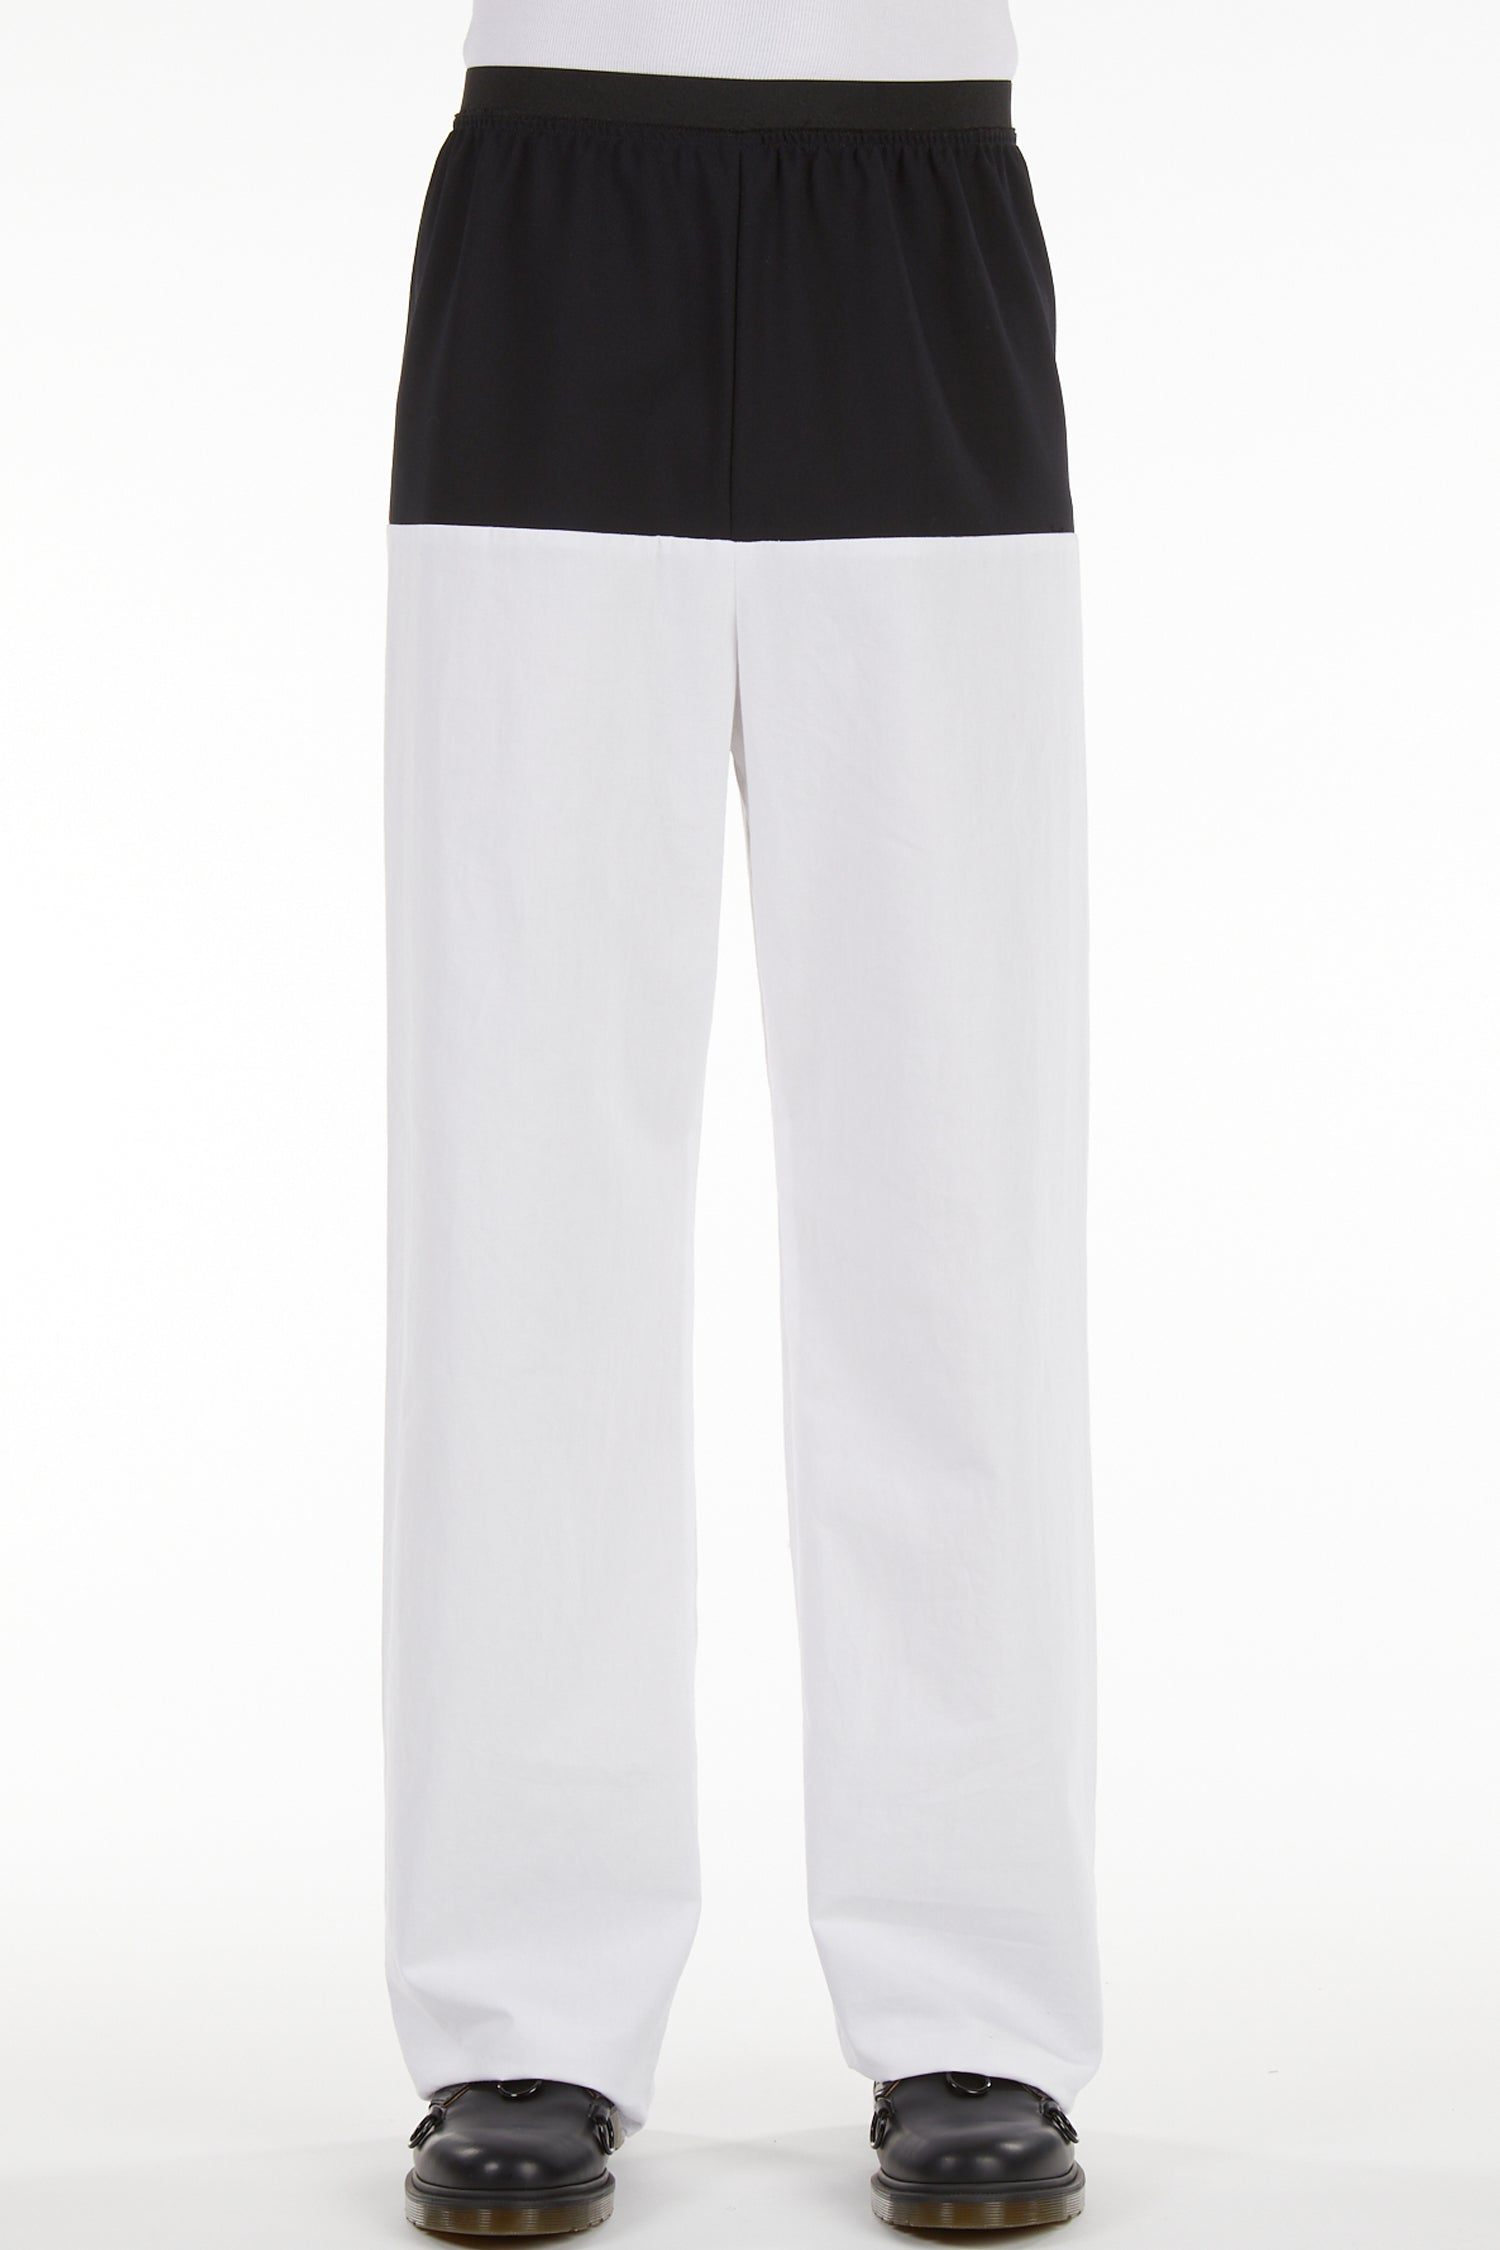 ELASTIC PANTS HORIZONTAL CUT